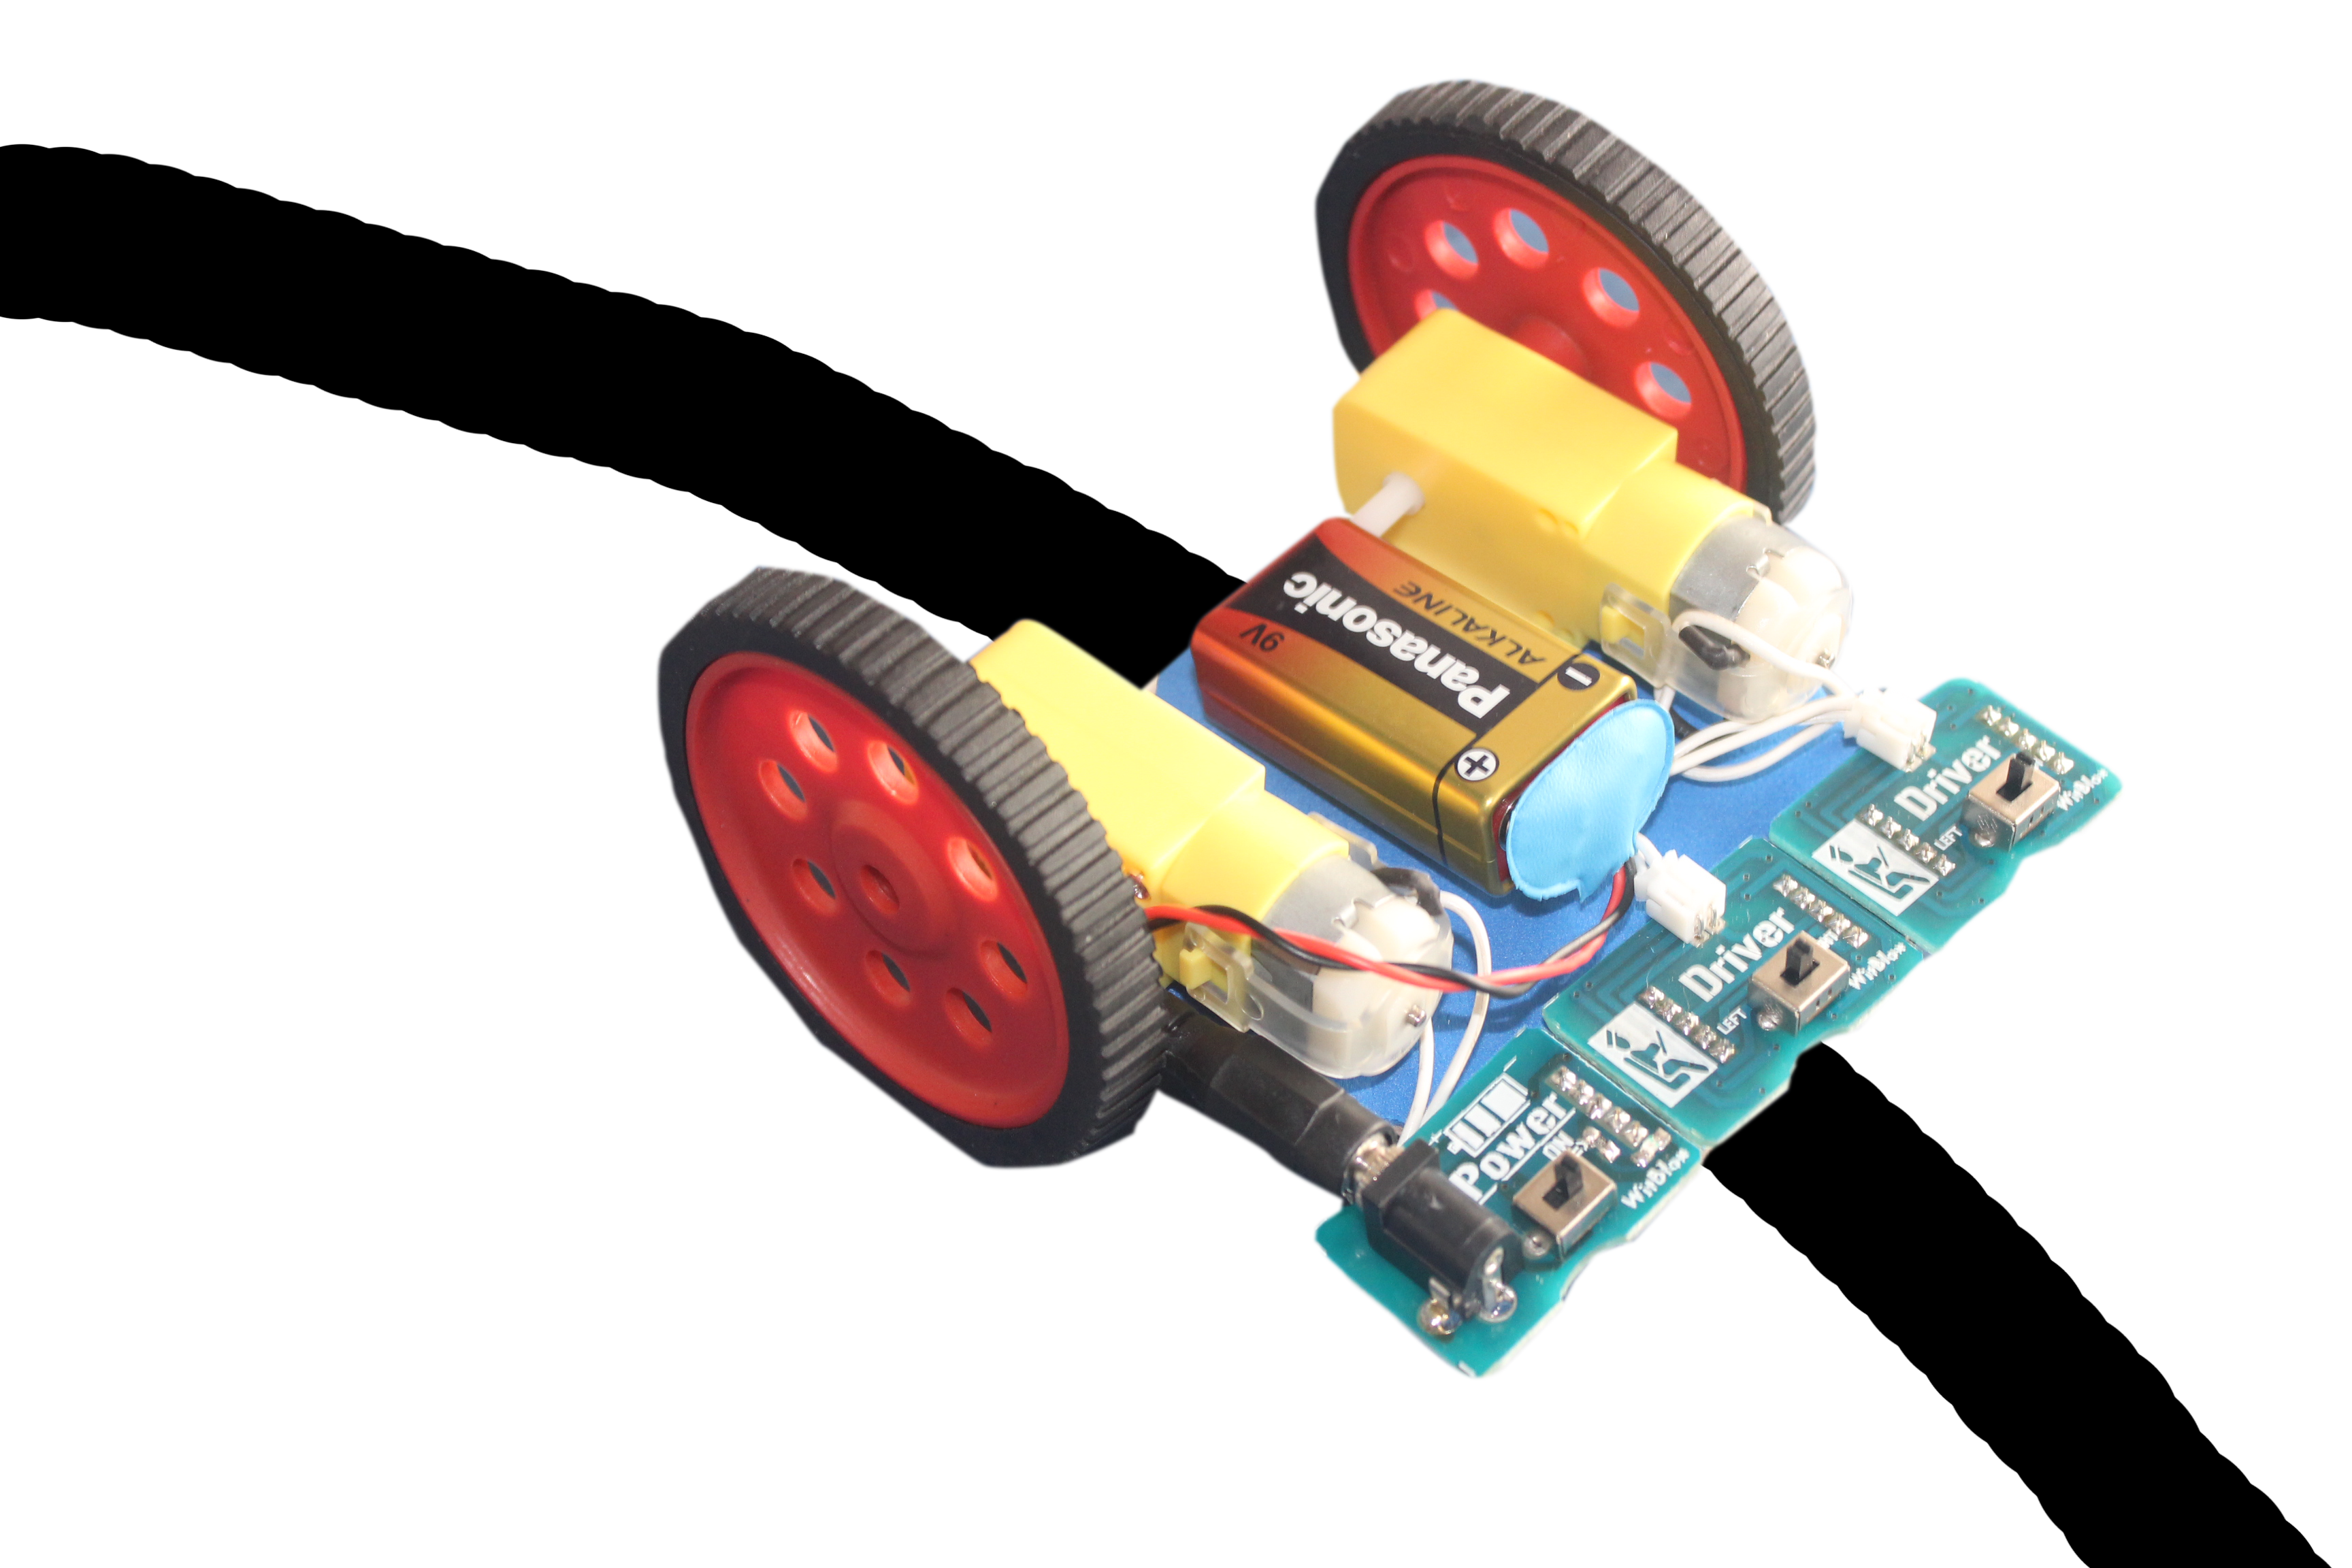 Picture of Line Follower Robot Using WitBlox